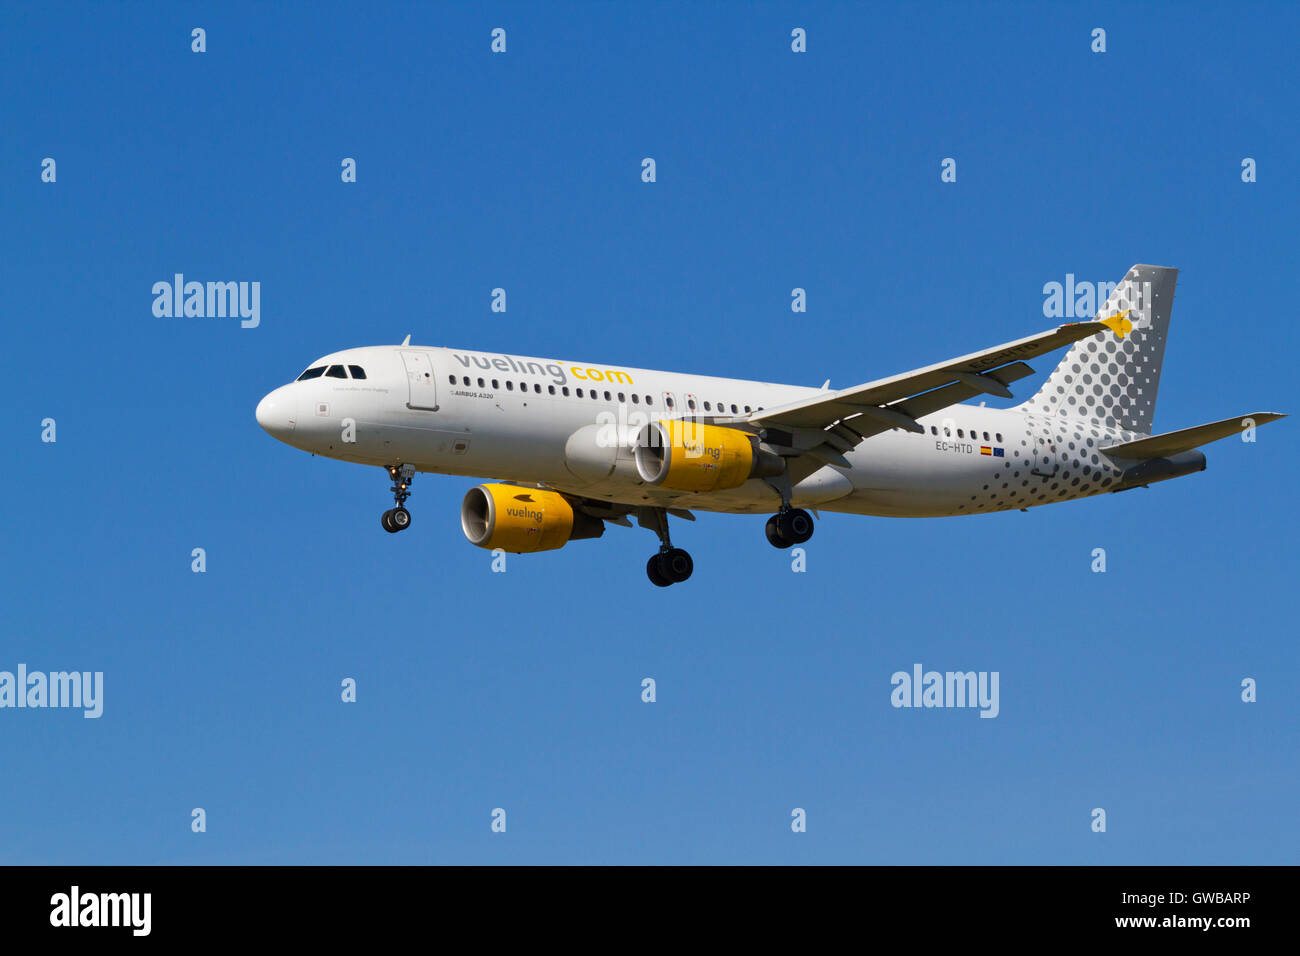 Vueling Airbus A320, EC-HTD, flight VY1326 from Alicante, Spain, on final approach to Copenhagen Airport, CPH. runway - Stock Image